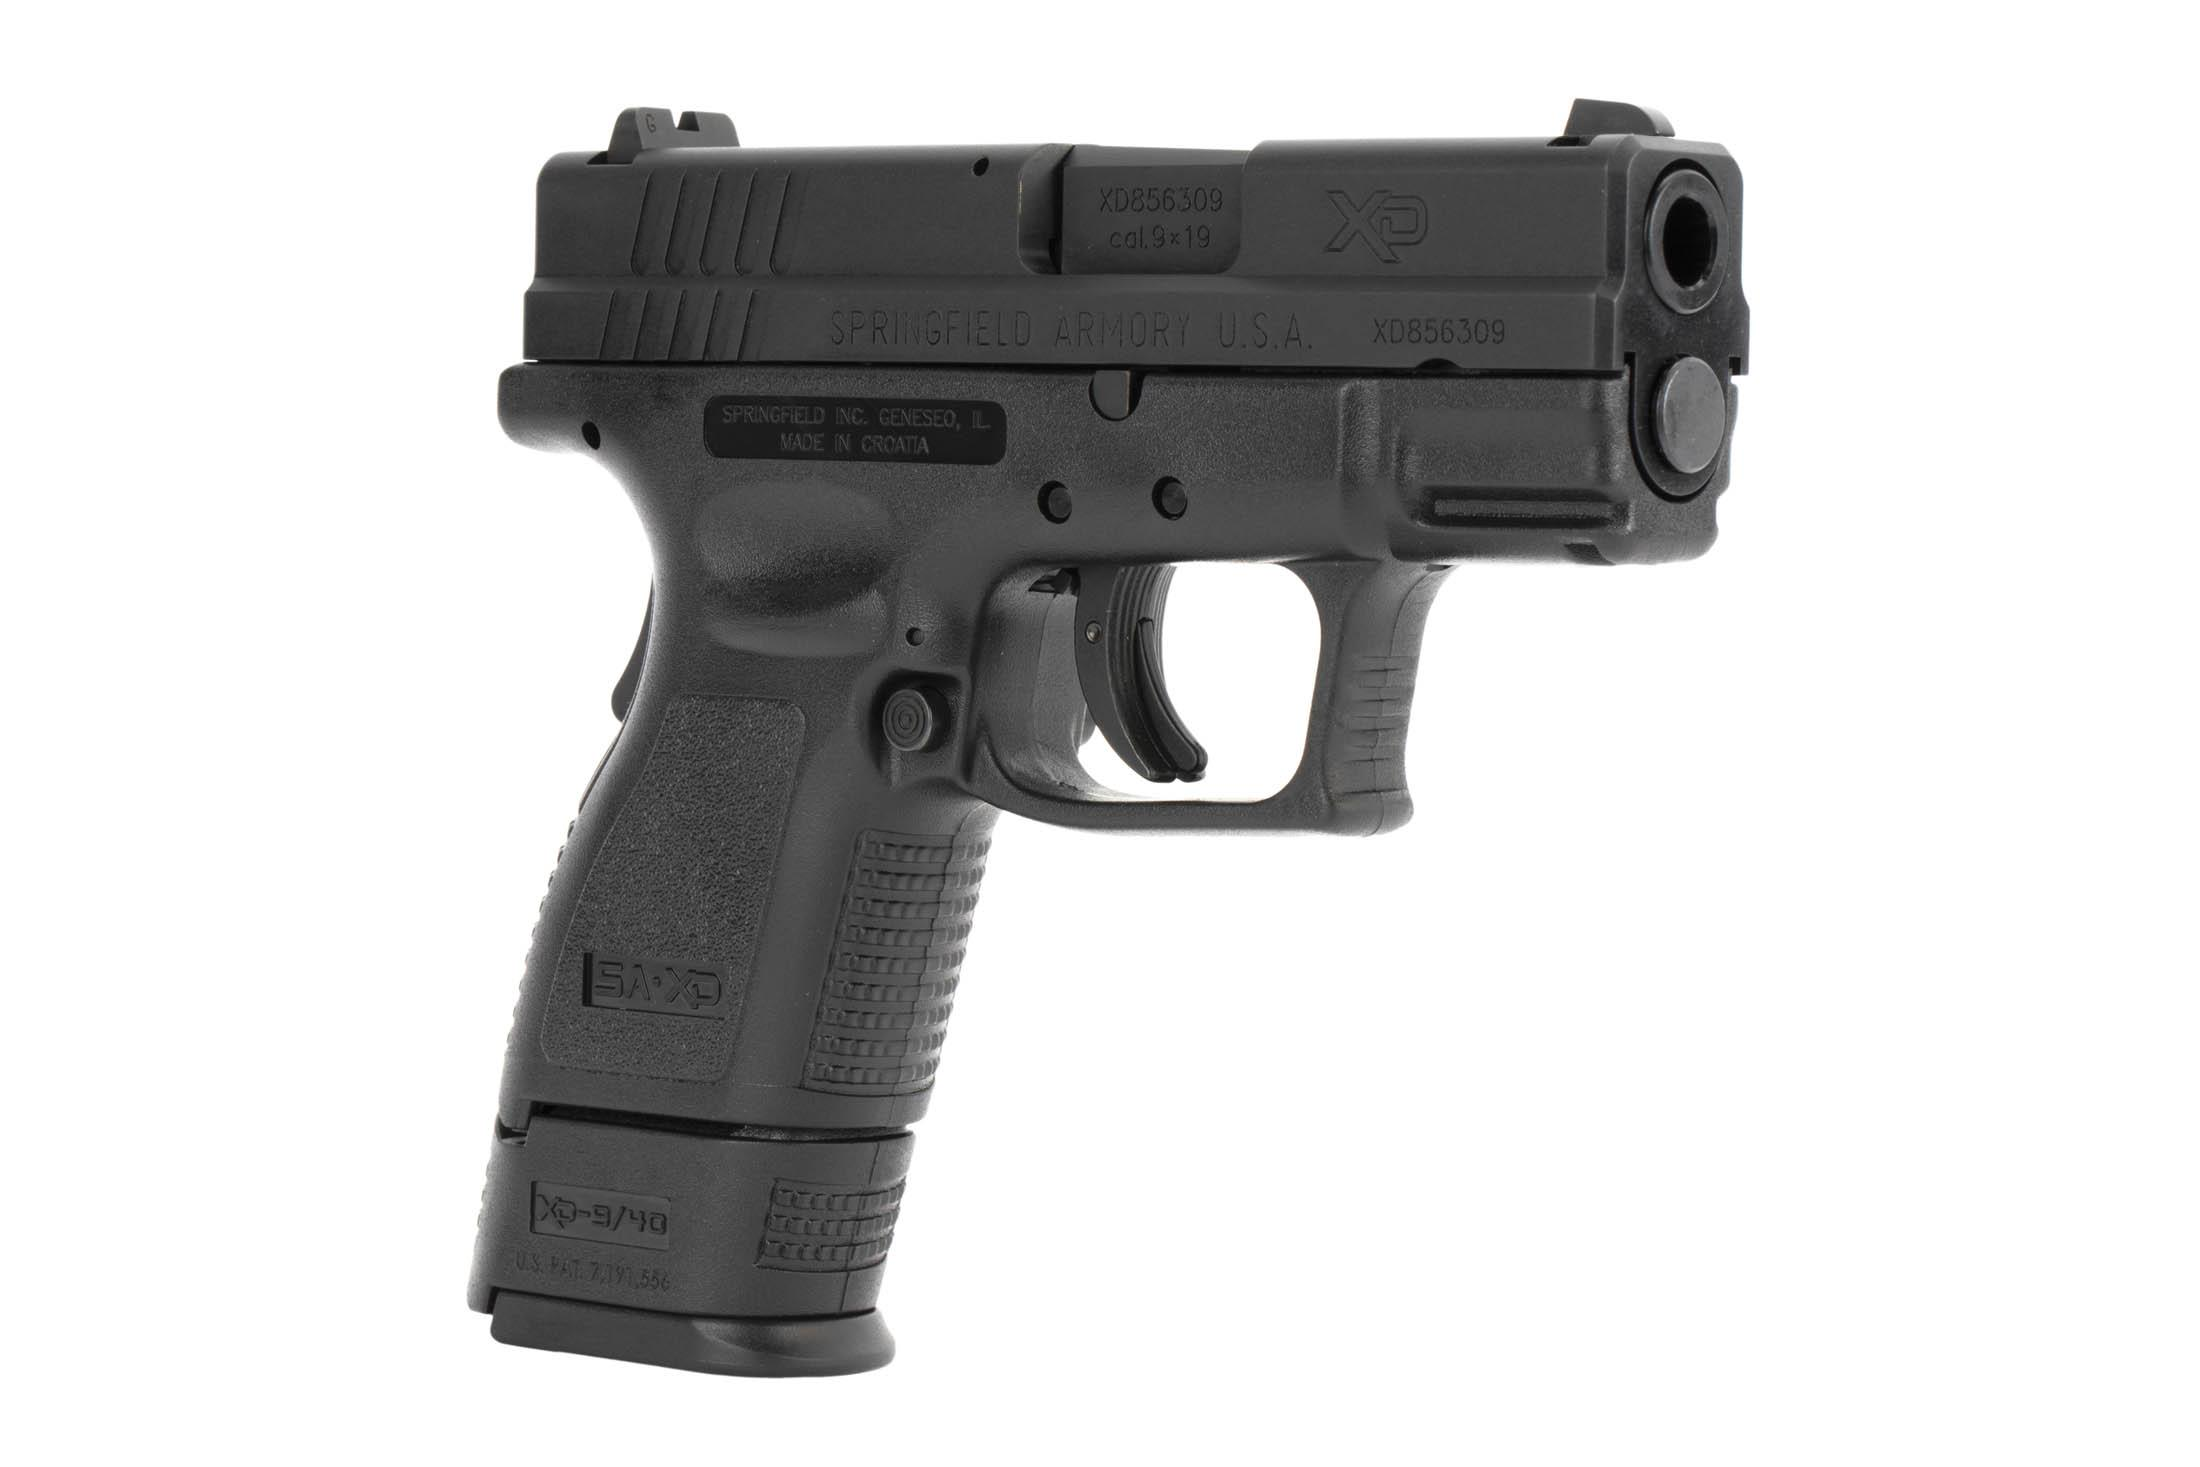 The Springfield Armory XD9 is a 9mm Sub Compact 16 round Handgun with a 3 inch Barrel designed for concealed carry